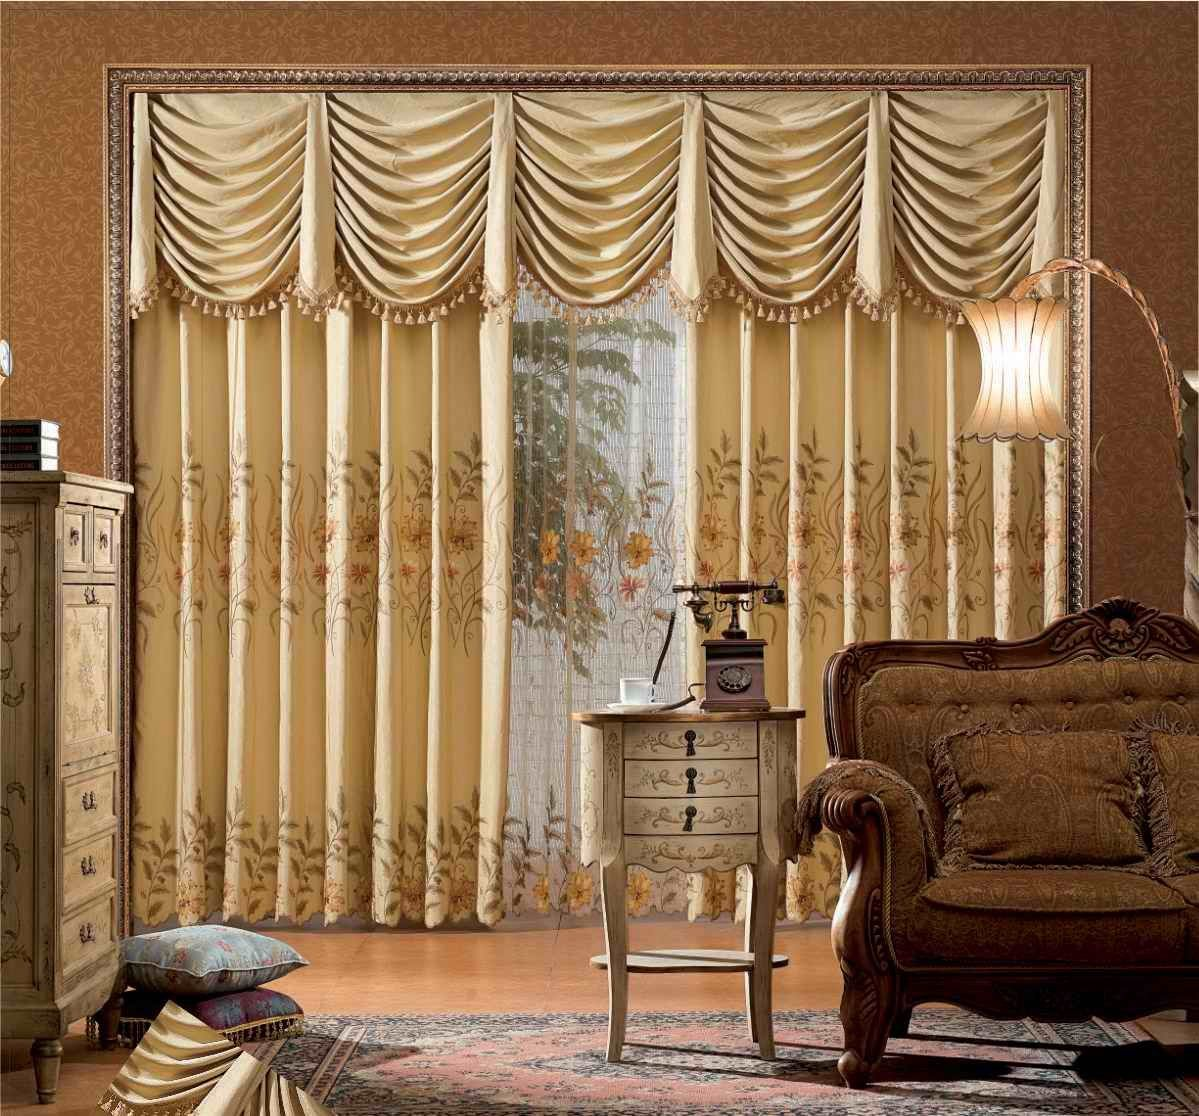 Living Room Design Curtains For Living Room 1000 images about curtains for living room on pinterest drapes ideas and small curtains